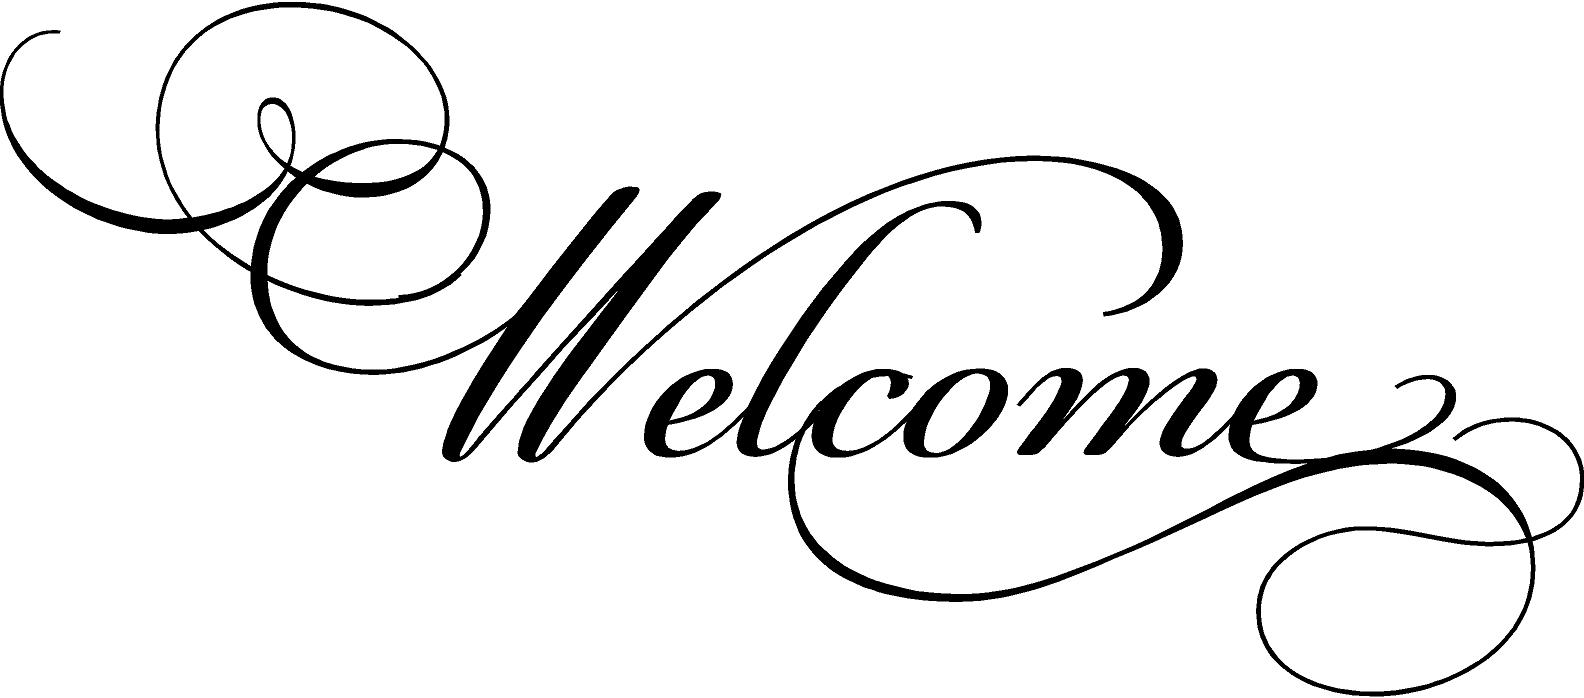 Welcome glad you are here clipart black and white jpg royalty free Welcome! Please say hi! We are glad to meet you! - Page 12 jpg royalty free